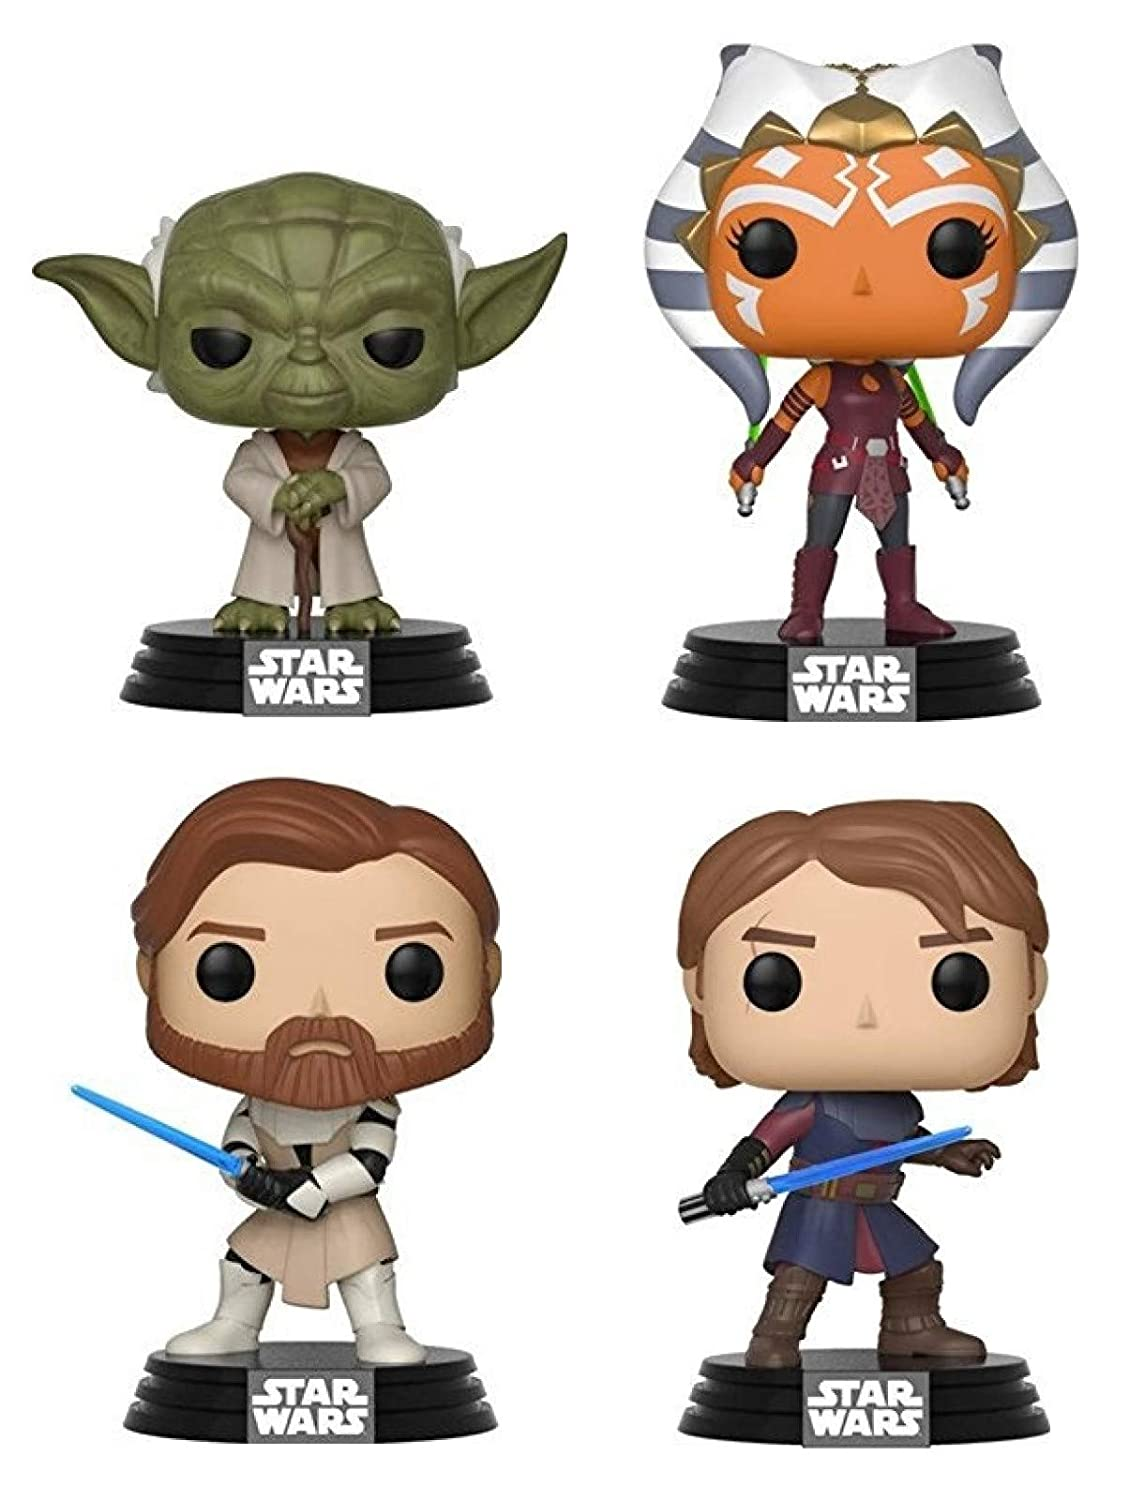 Star Wars: The Clone Wars Collectible Vinyl Figures Set of 4 Funko Pop Set of 4 3.75 3.75